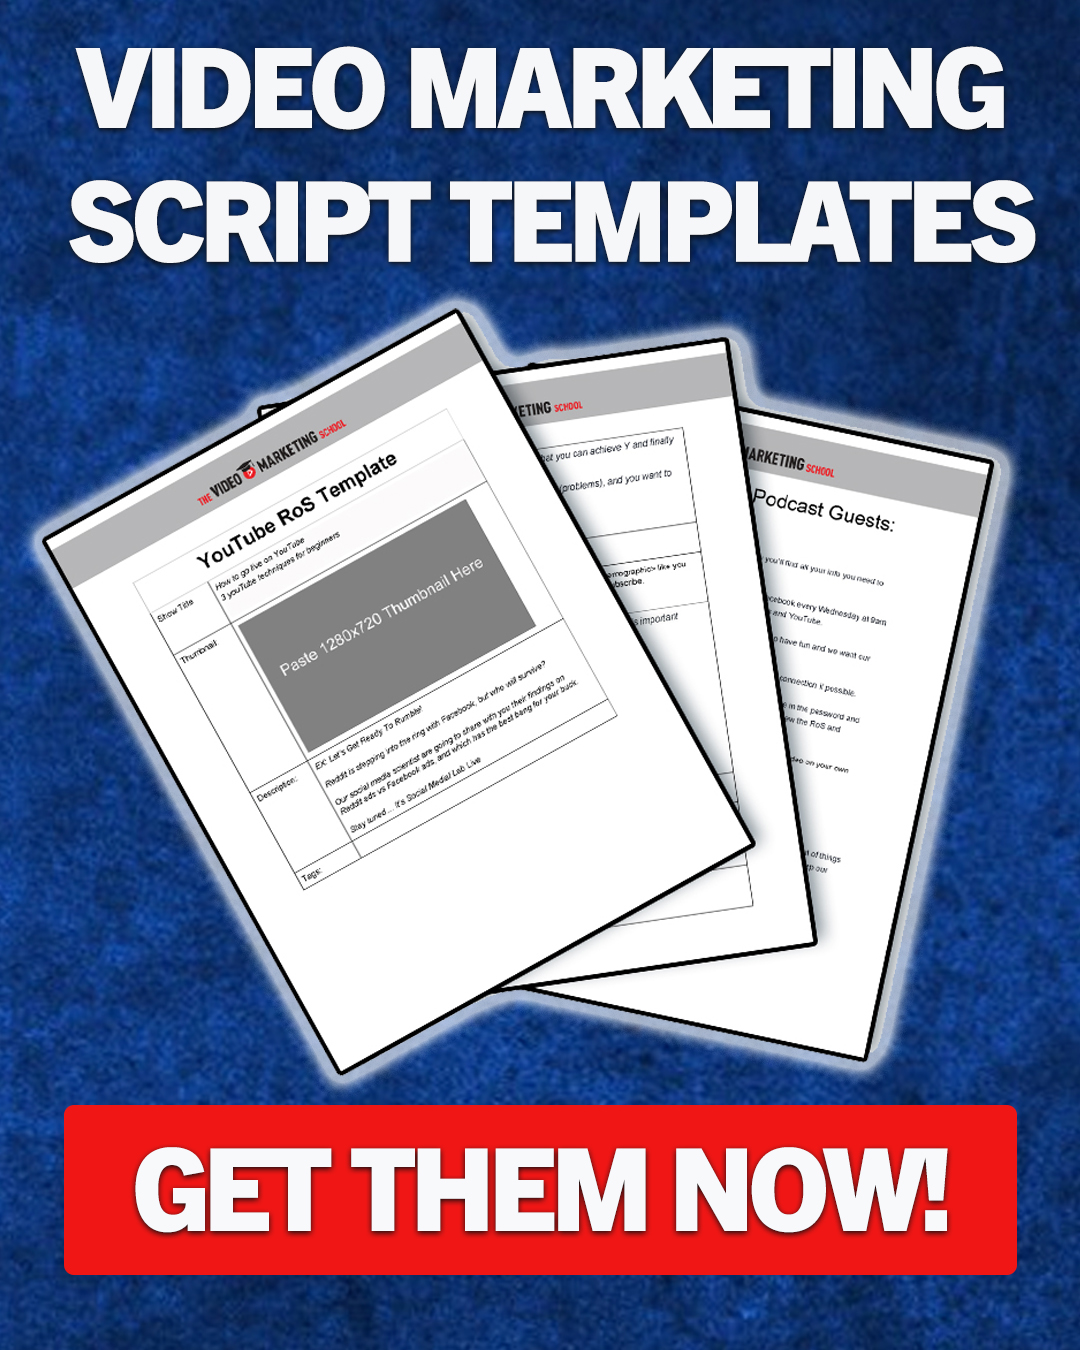 Sidebar free offer script templates